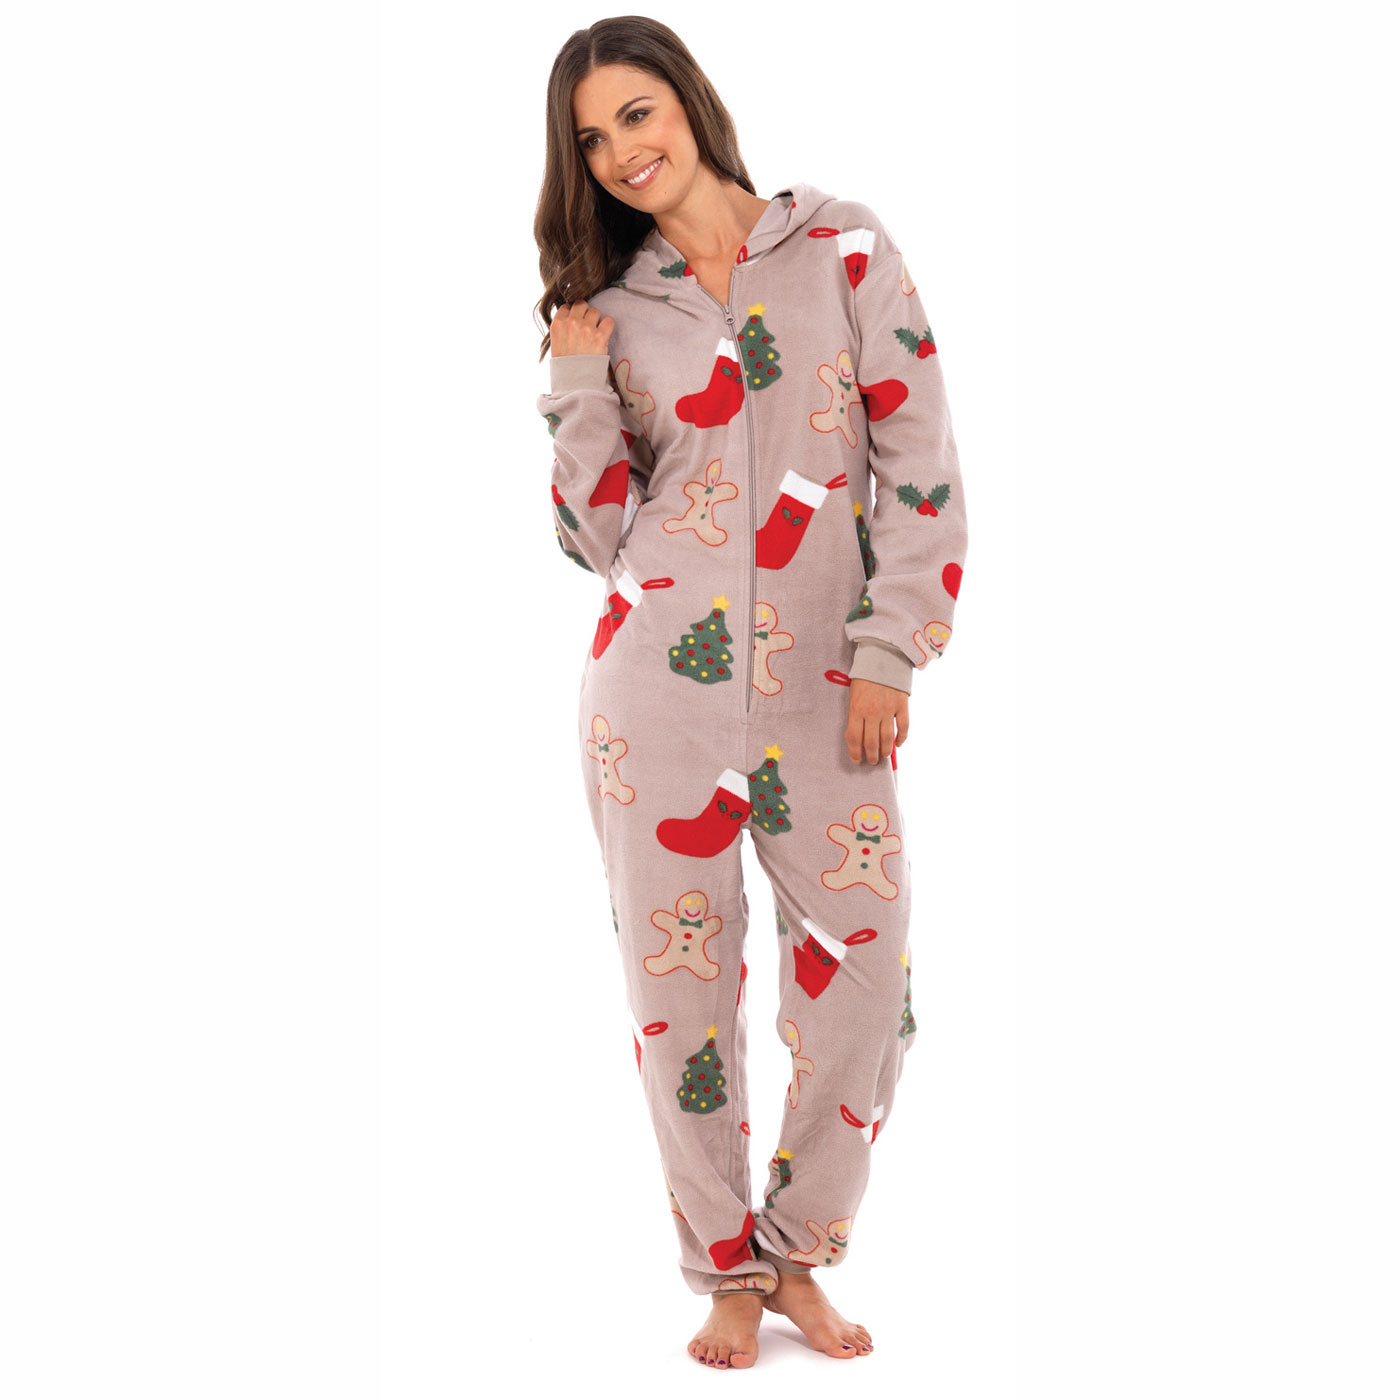 Ladies Fairisle All-In-One With Hood Onesie Christmas Festive ...